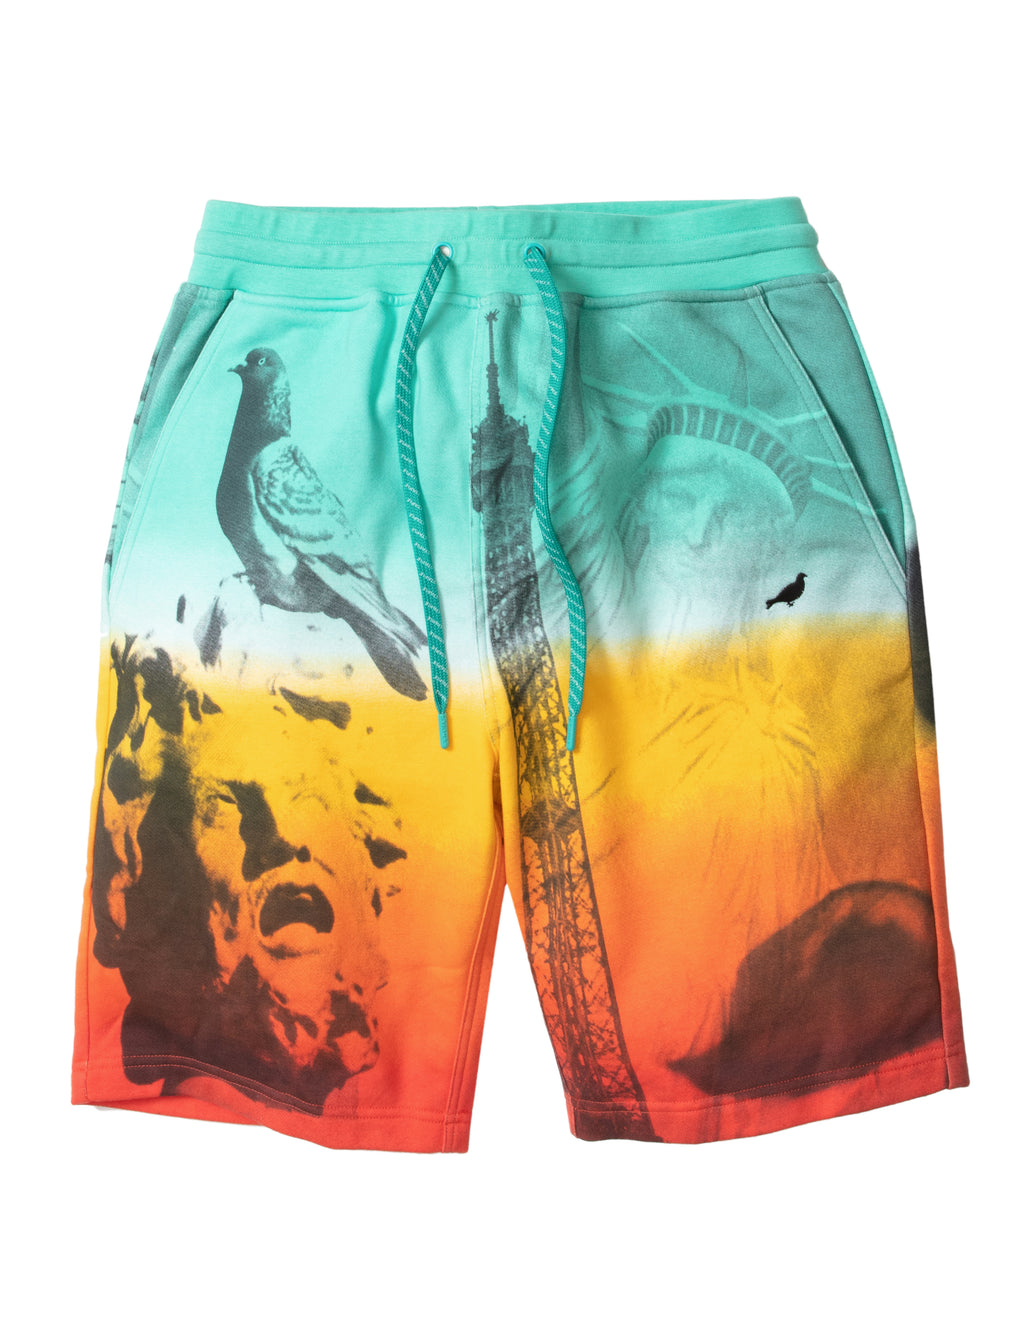 World Photo Sweatshort - Shorts | Staple Pigeon